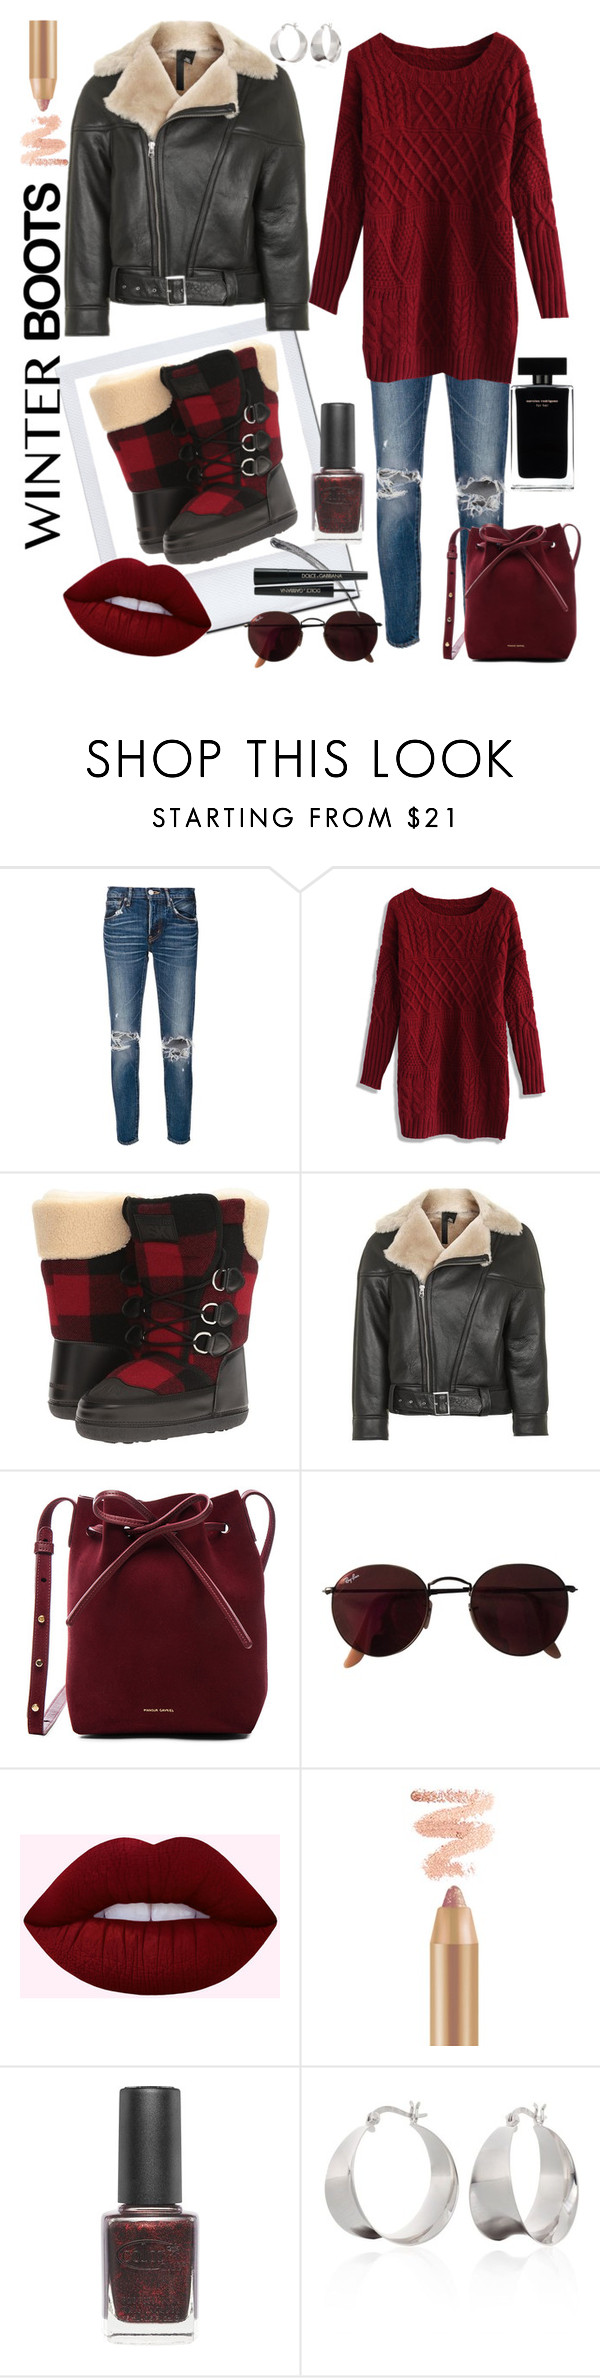 """Winter Boots in Plaid"" by hollybgdesigns ❤ liked on Polyvore featuring moussy, Chicwish, Dsquared2, Topshop, Mansur Gavriel, Ray-Ban, Narciso Rodriguez, Color Club, Belk & Co. and Boots"